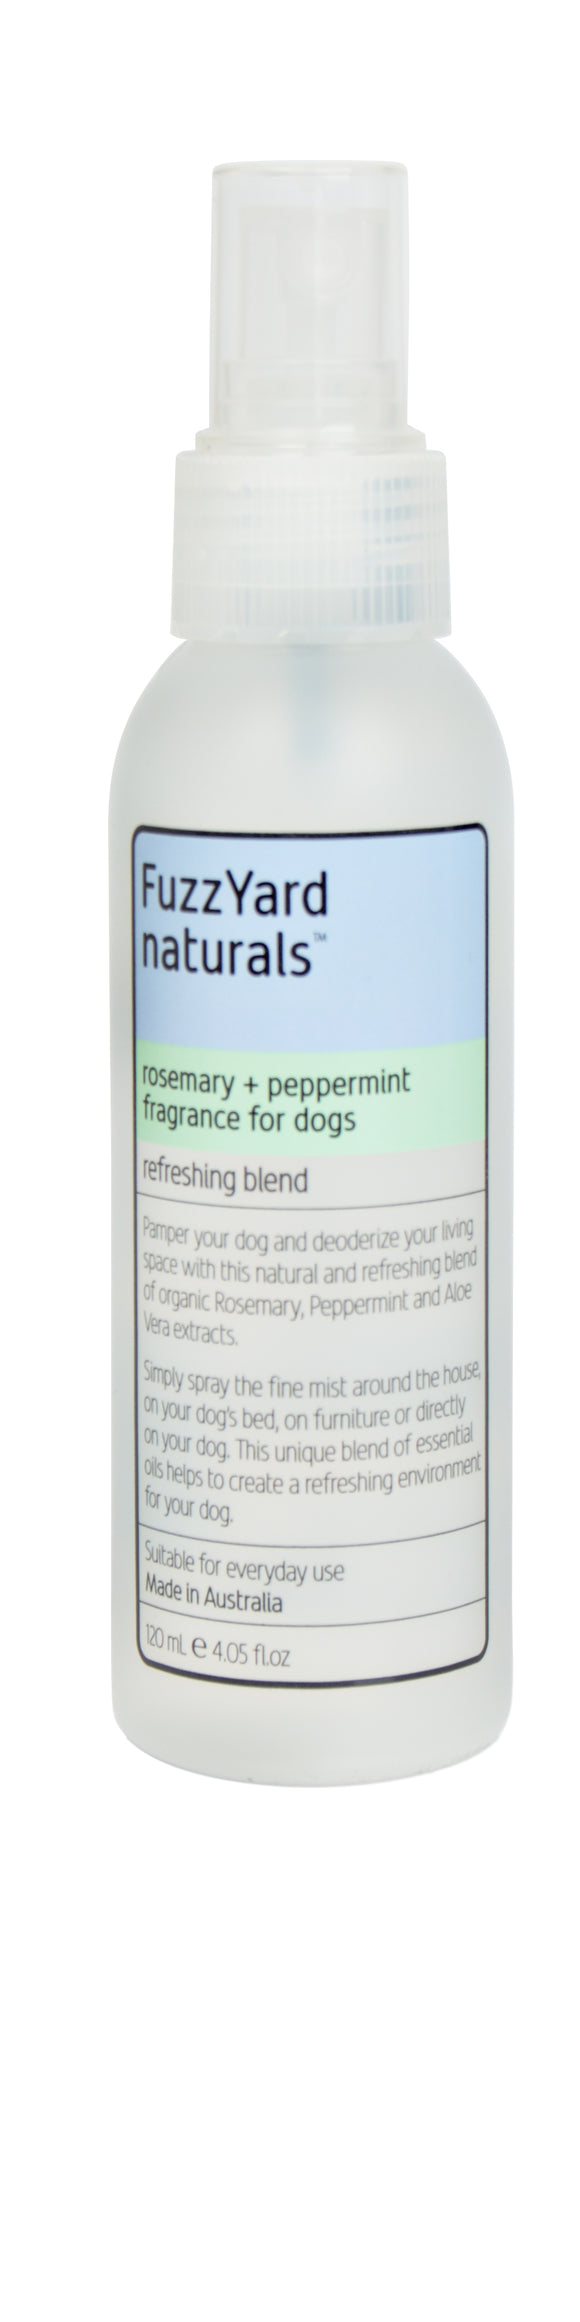 FuzzYard Rosemary + Peppermint, Refreshing Spray, Fragrance For Dogs